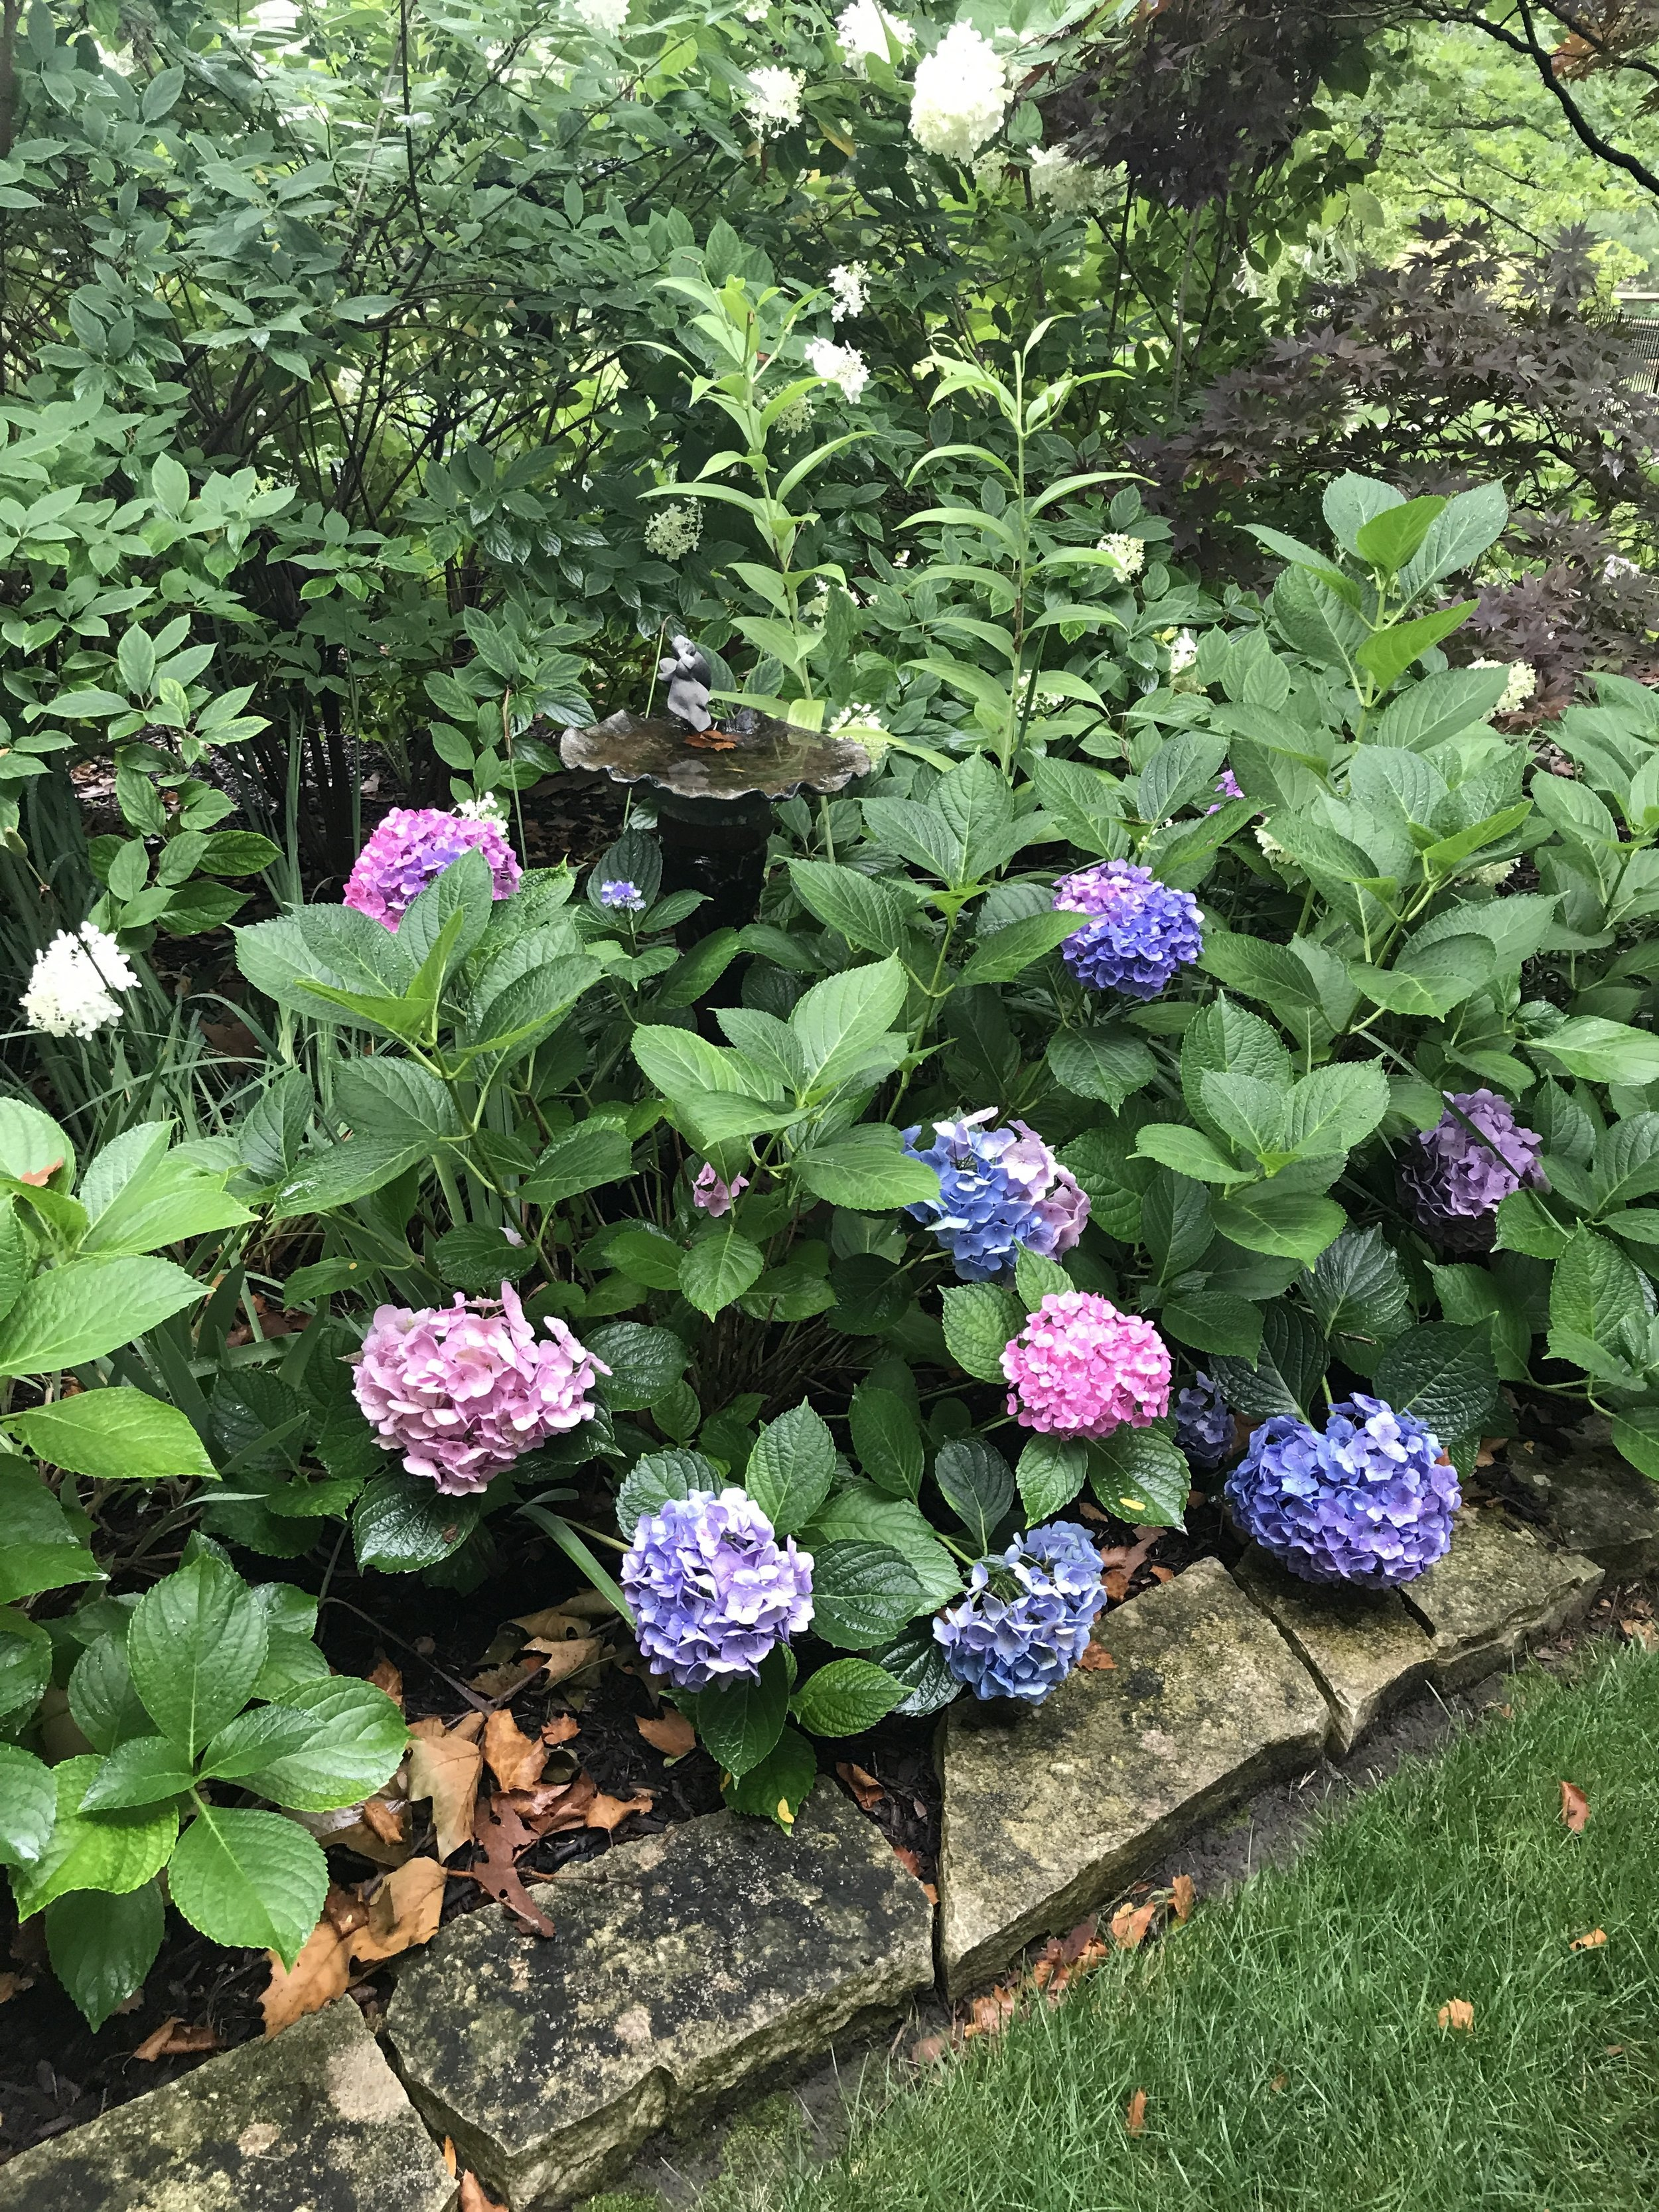 This colorful hydrangea bush looks great in the flower bed and in flower arrangements you can bring inside